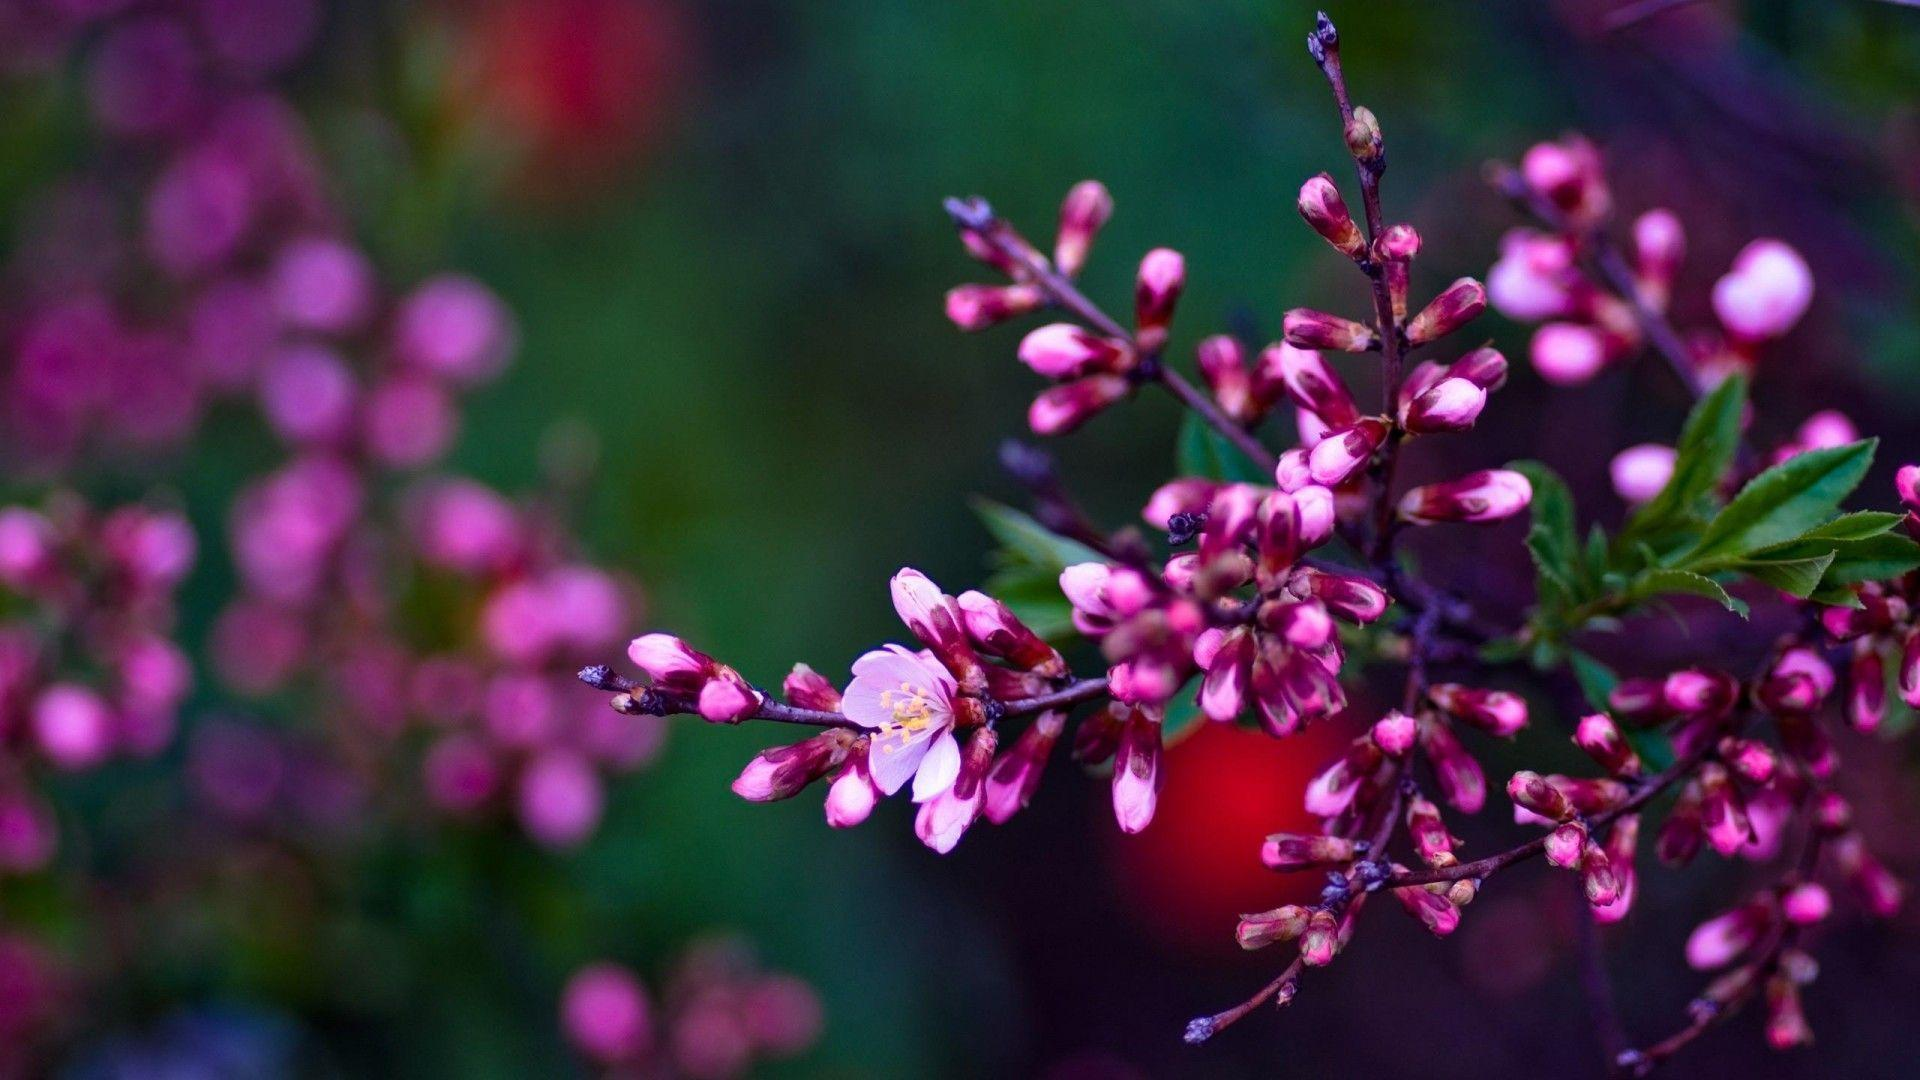 HD Spring Wallpapers For Desktop 1920x1080